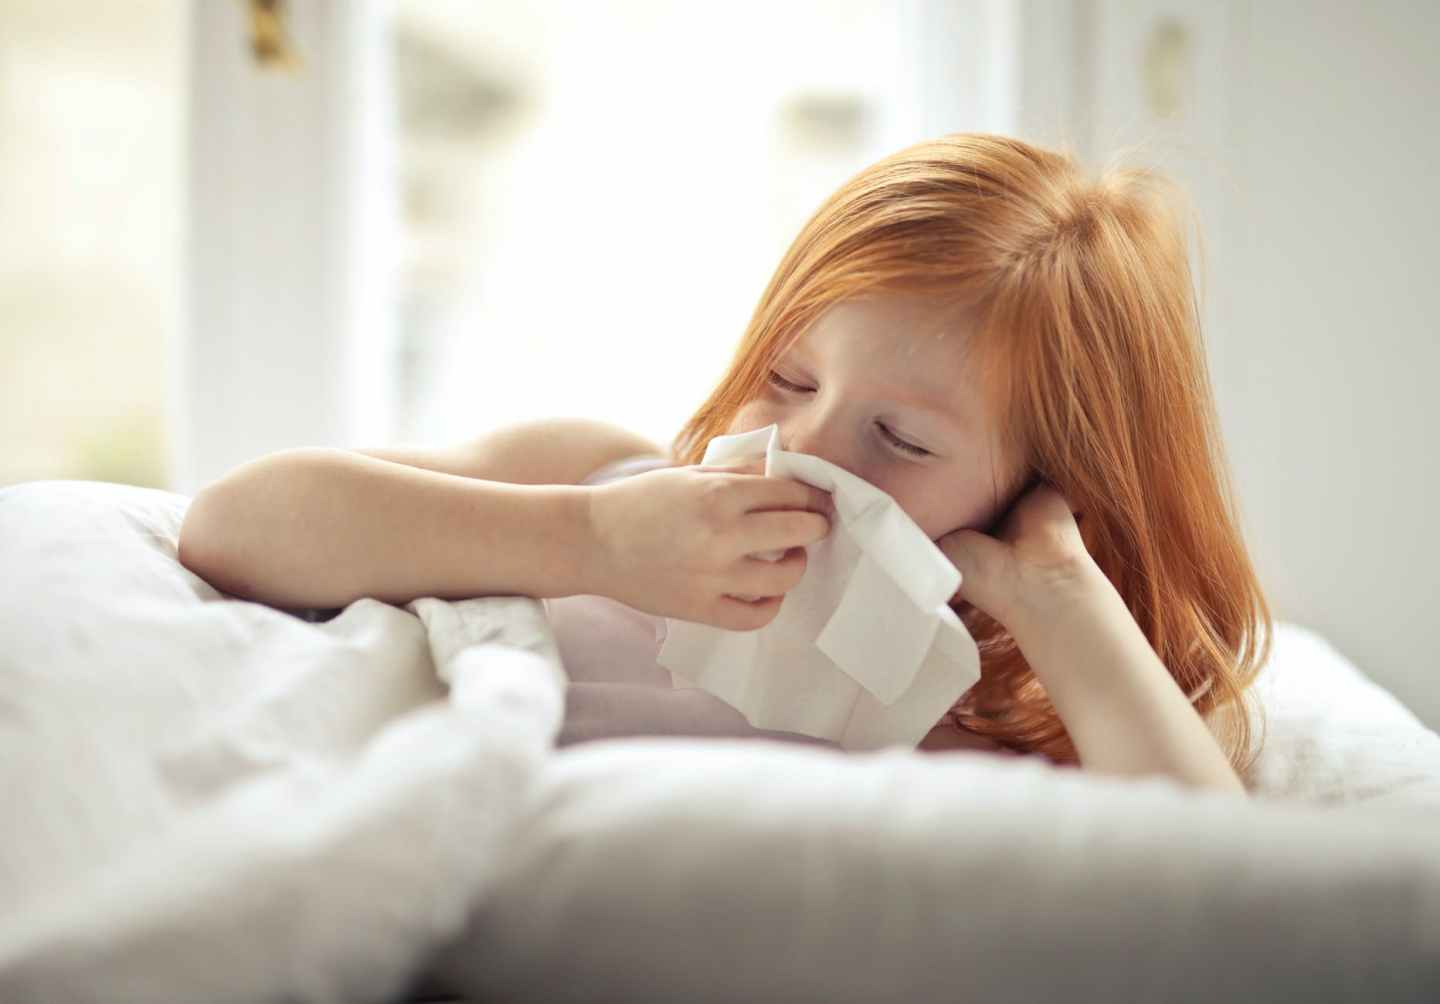 ill preteen girl wiping snot while resting in bed at home